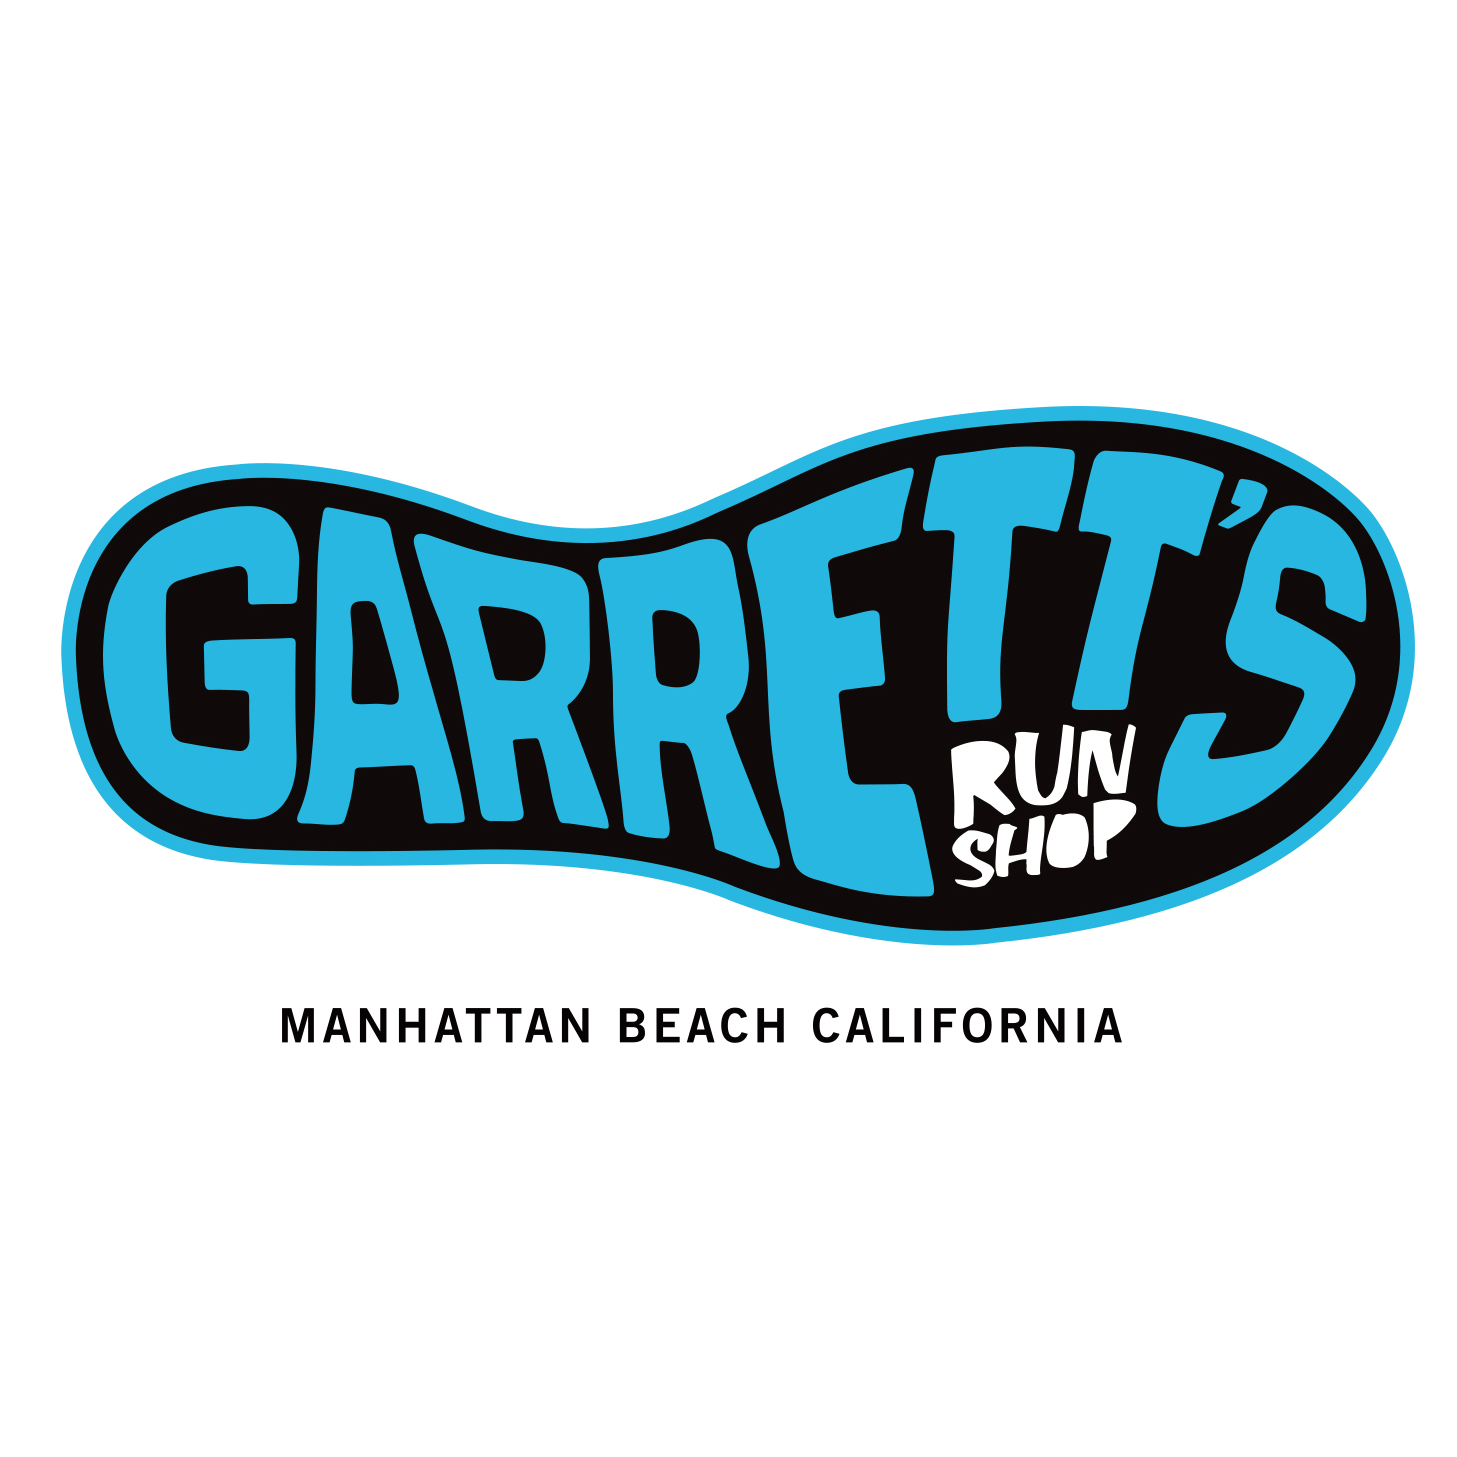 Garrett's Run Shop